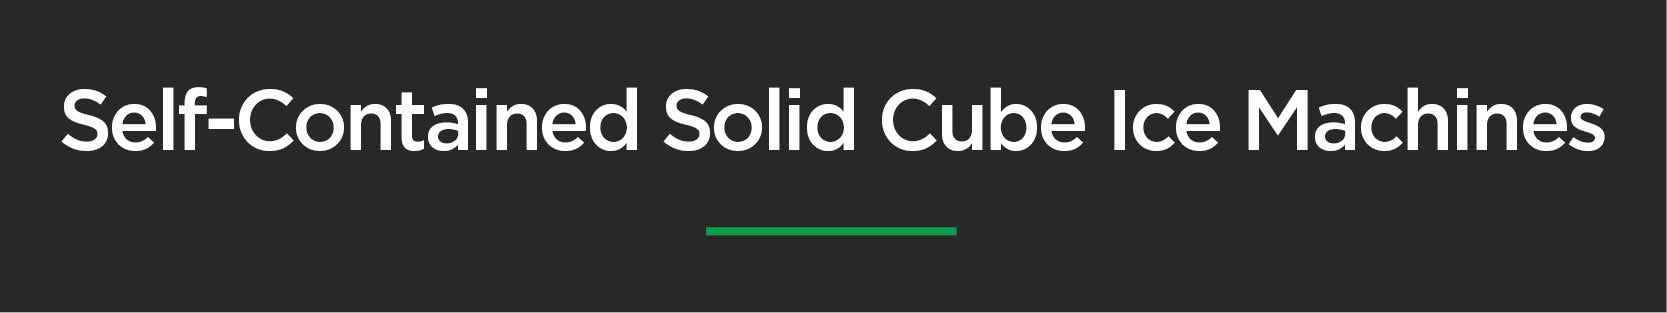 Self-Contained Solid Cube Ice